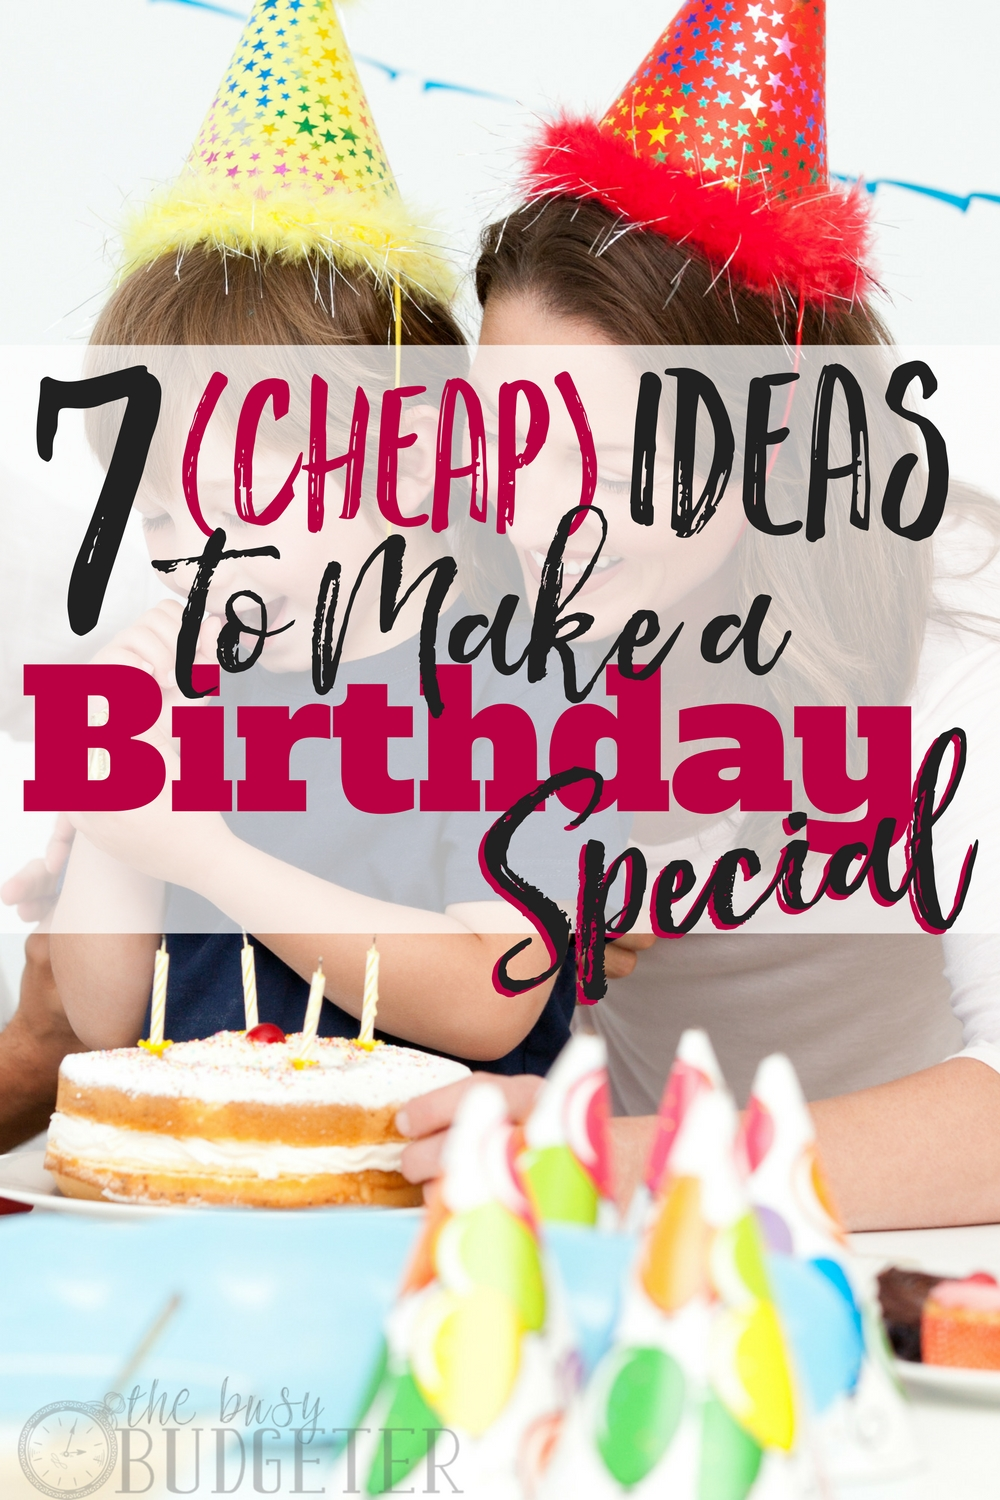 Simple And Cheap Living Room Decoration: 7 (Cheap!) Ideas To Make A Birthday Special